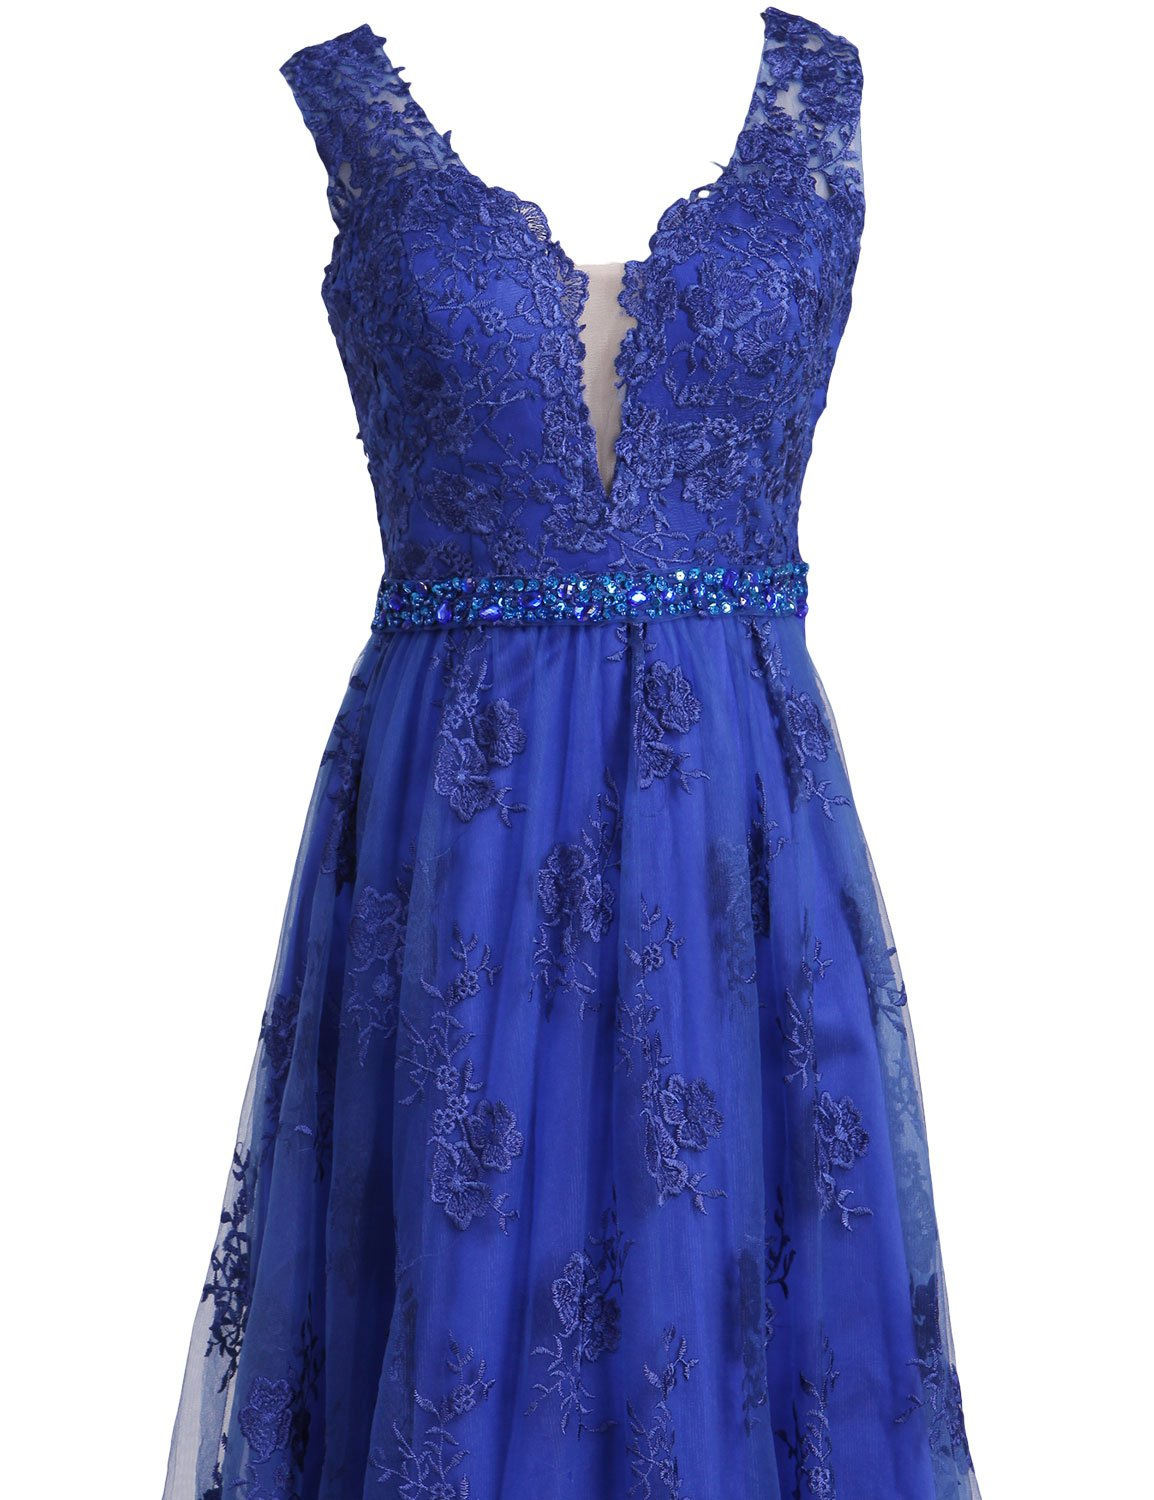 SeasonMall Womens Prom Dresses 2016 Lace V-Neck A Line Sleeveless Sweep Train With Beading Dress Size 0 Dark Royal Blue by SeasonMall (Image #3)